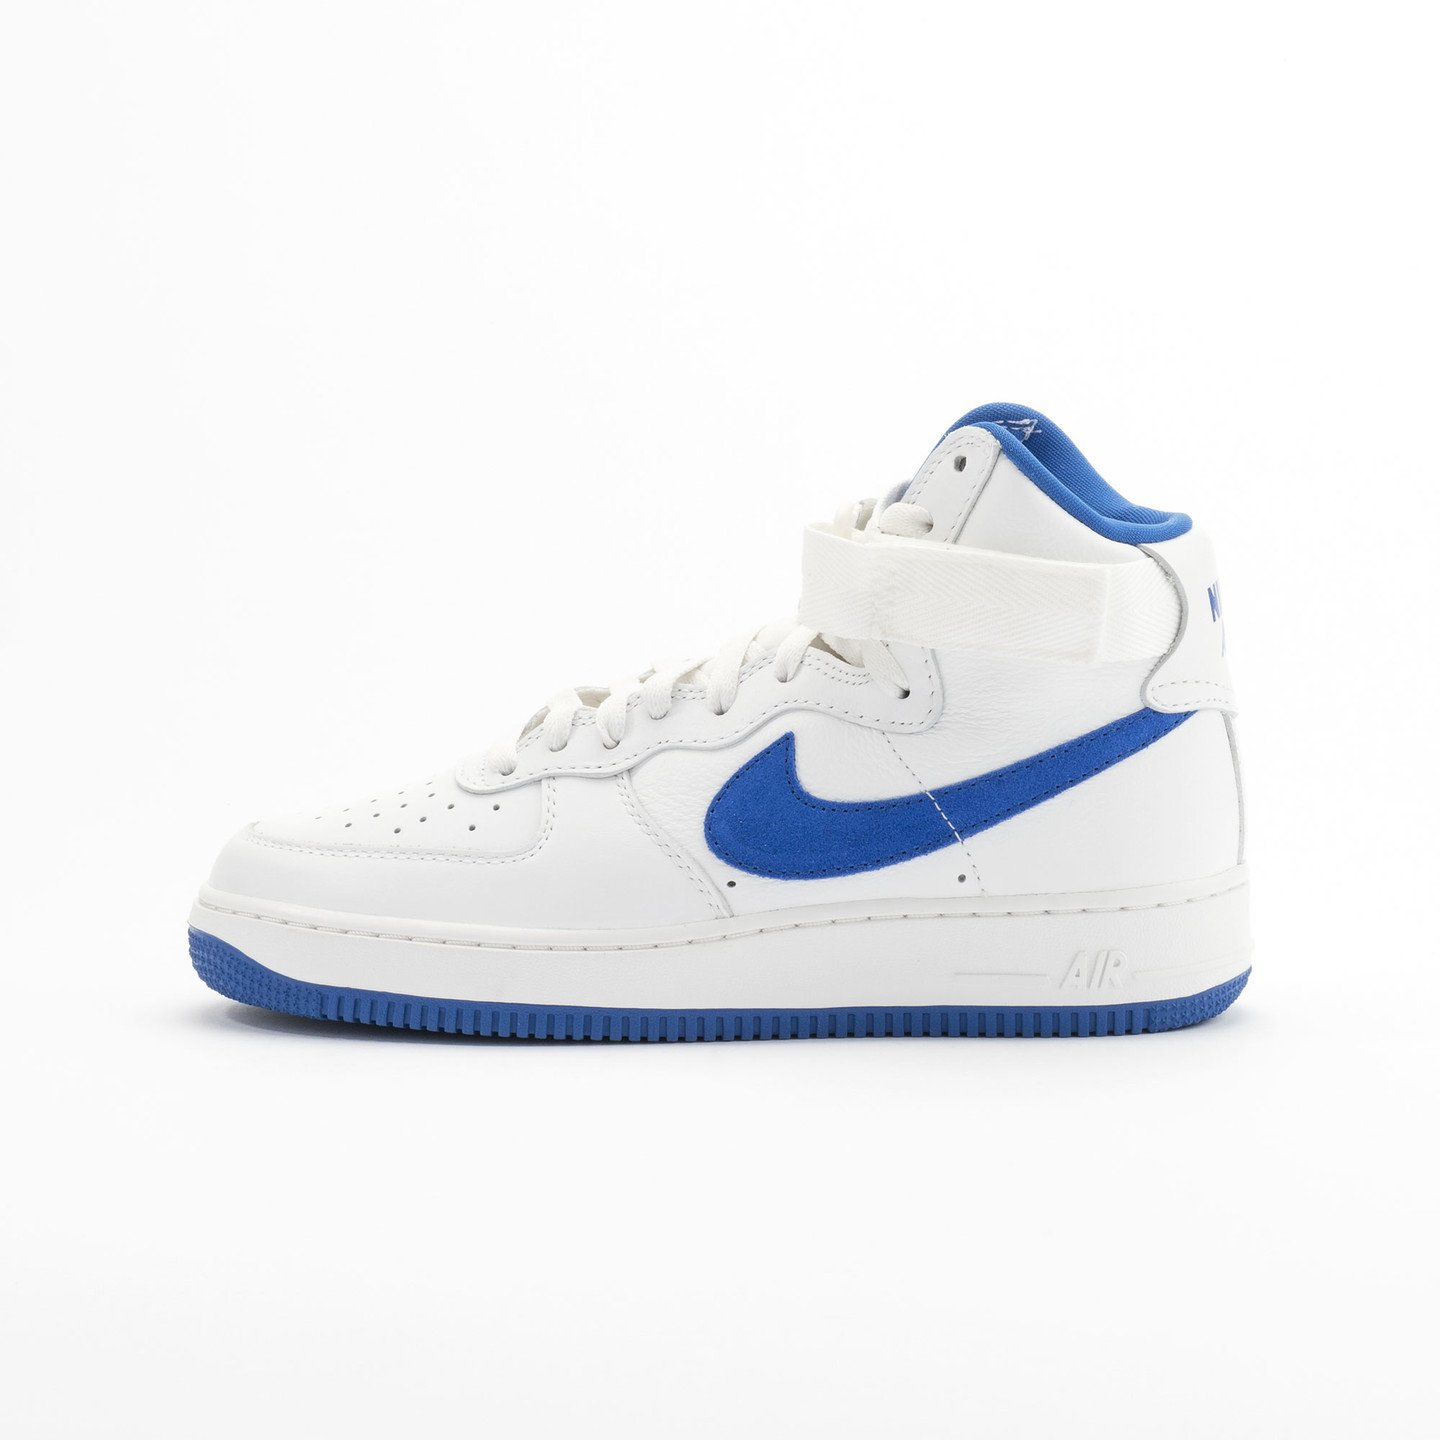 Nike Air Force 1 Hi Retro OG QS Summit White - Game Royal 743546-103-41